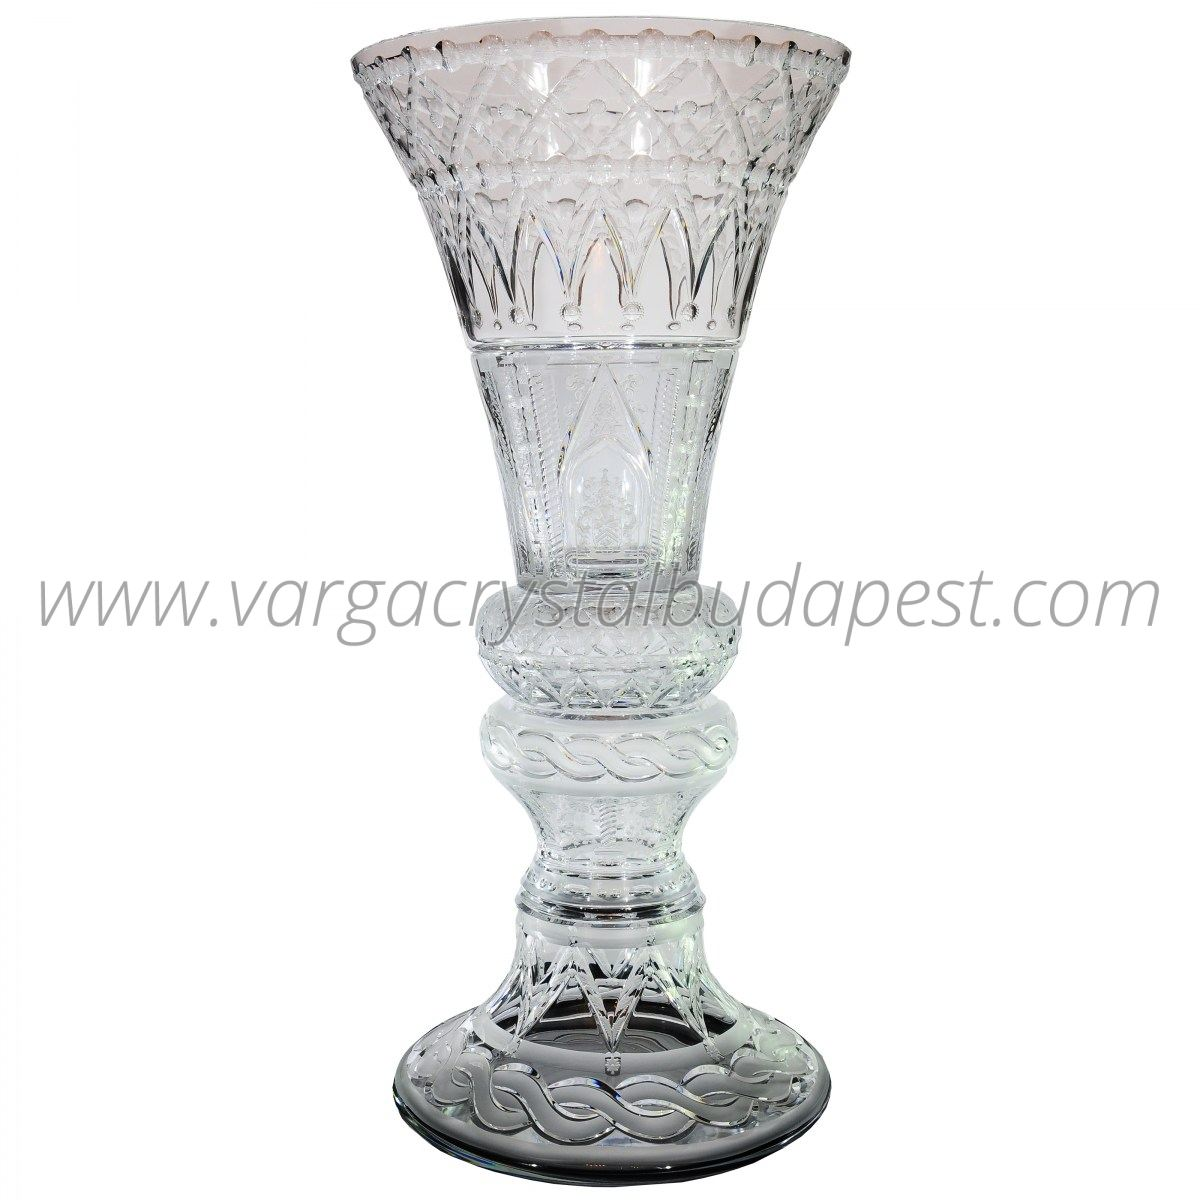 One of a Kind Interior Trump Vase - $ 29029 / € 25400